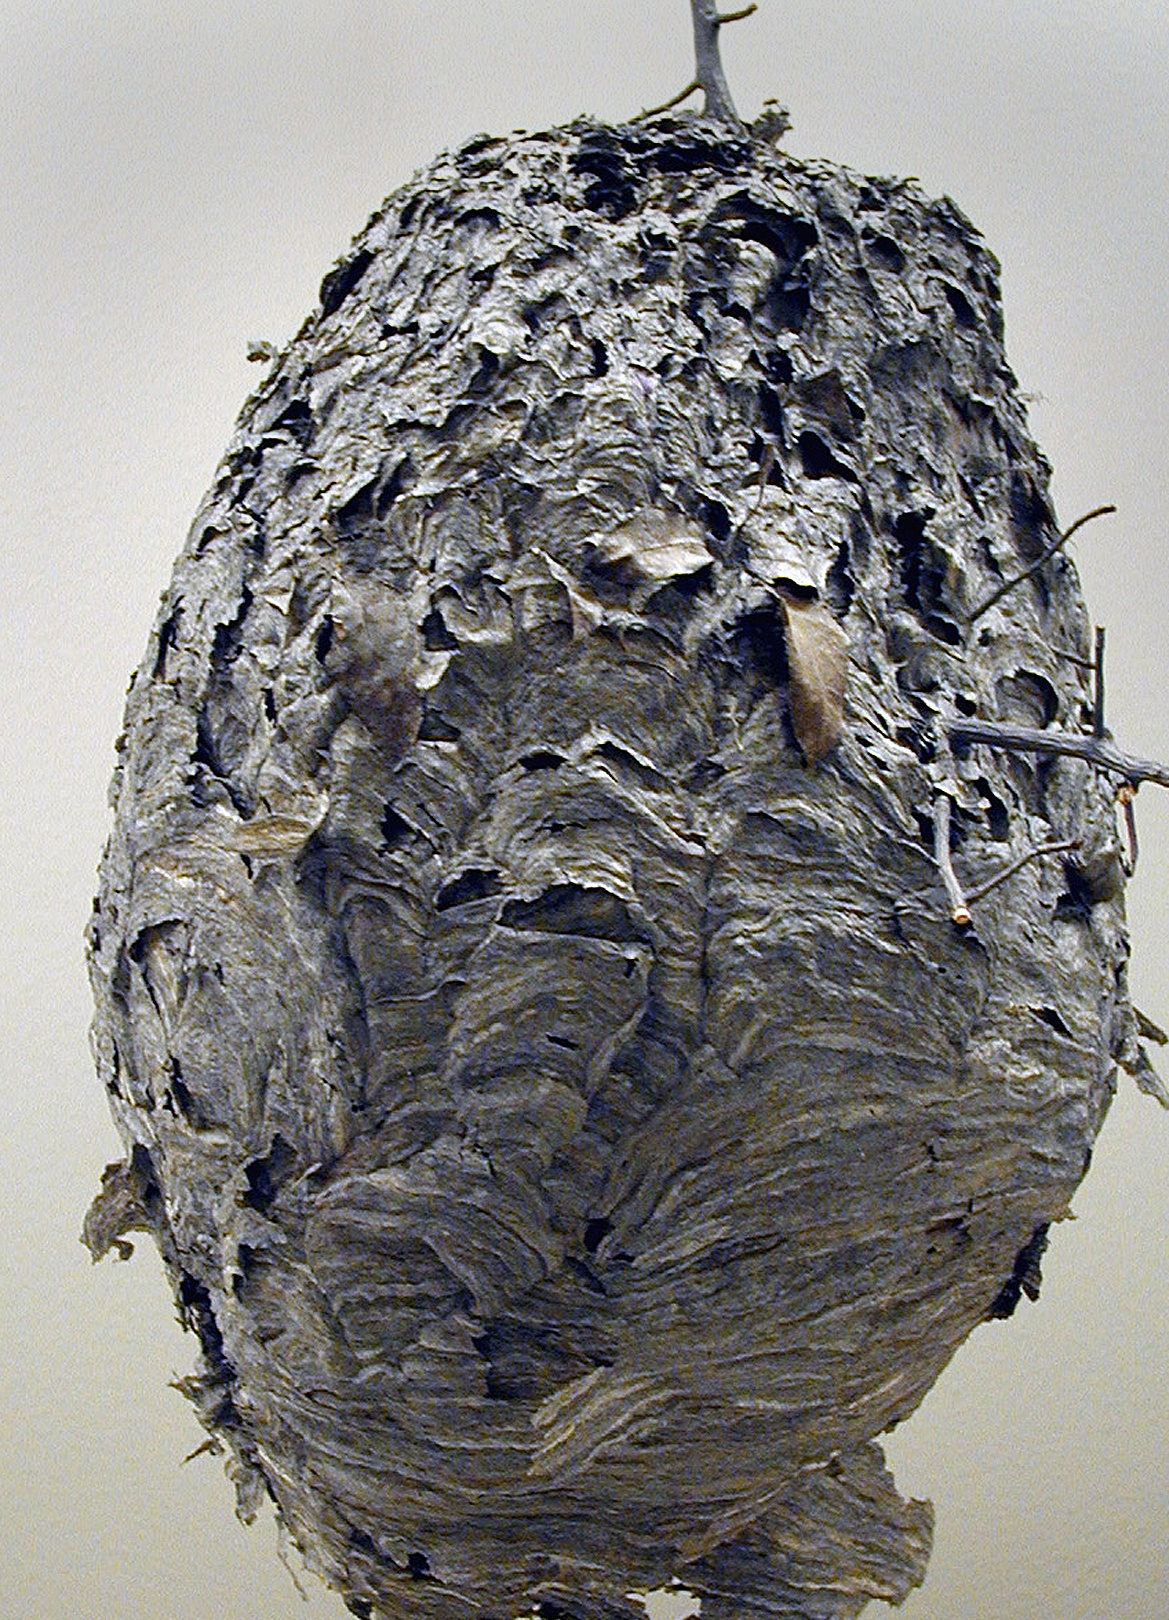 Black wasps nests